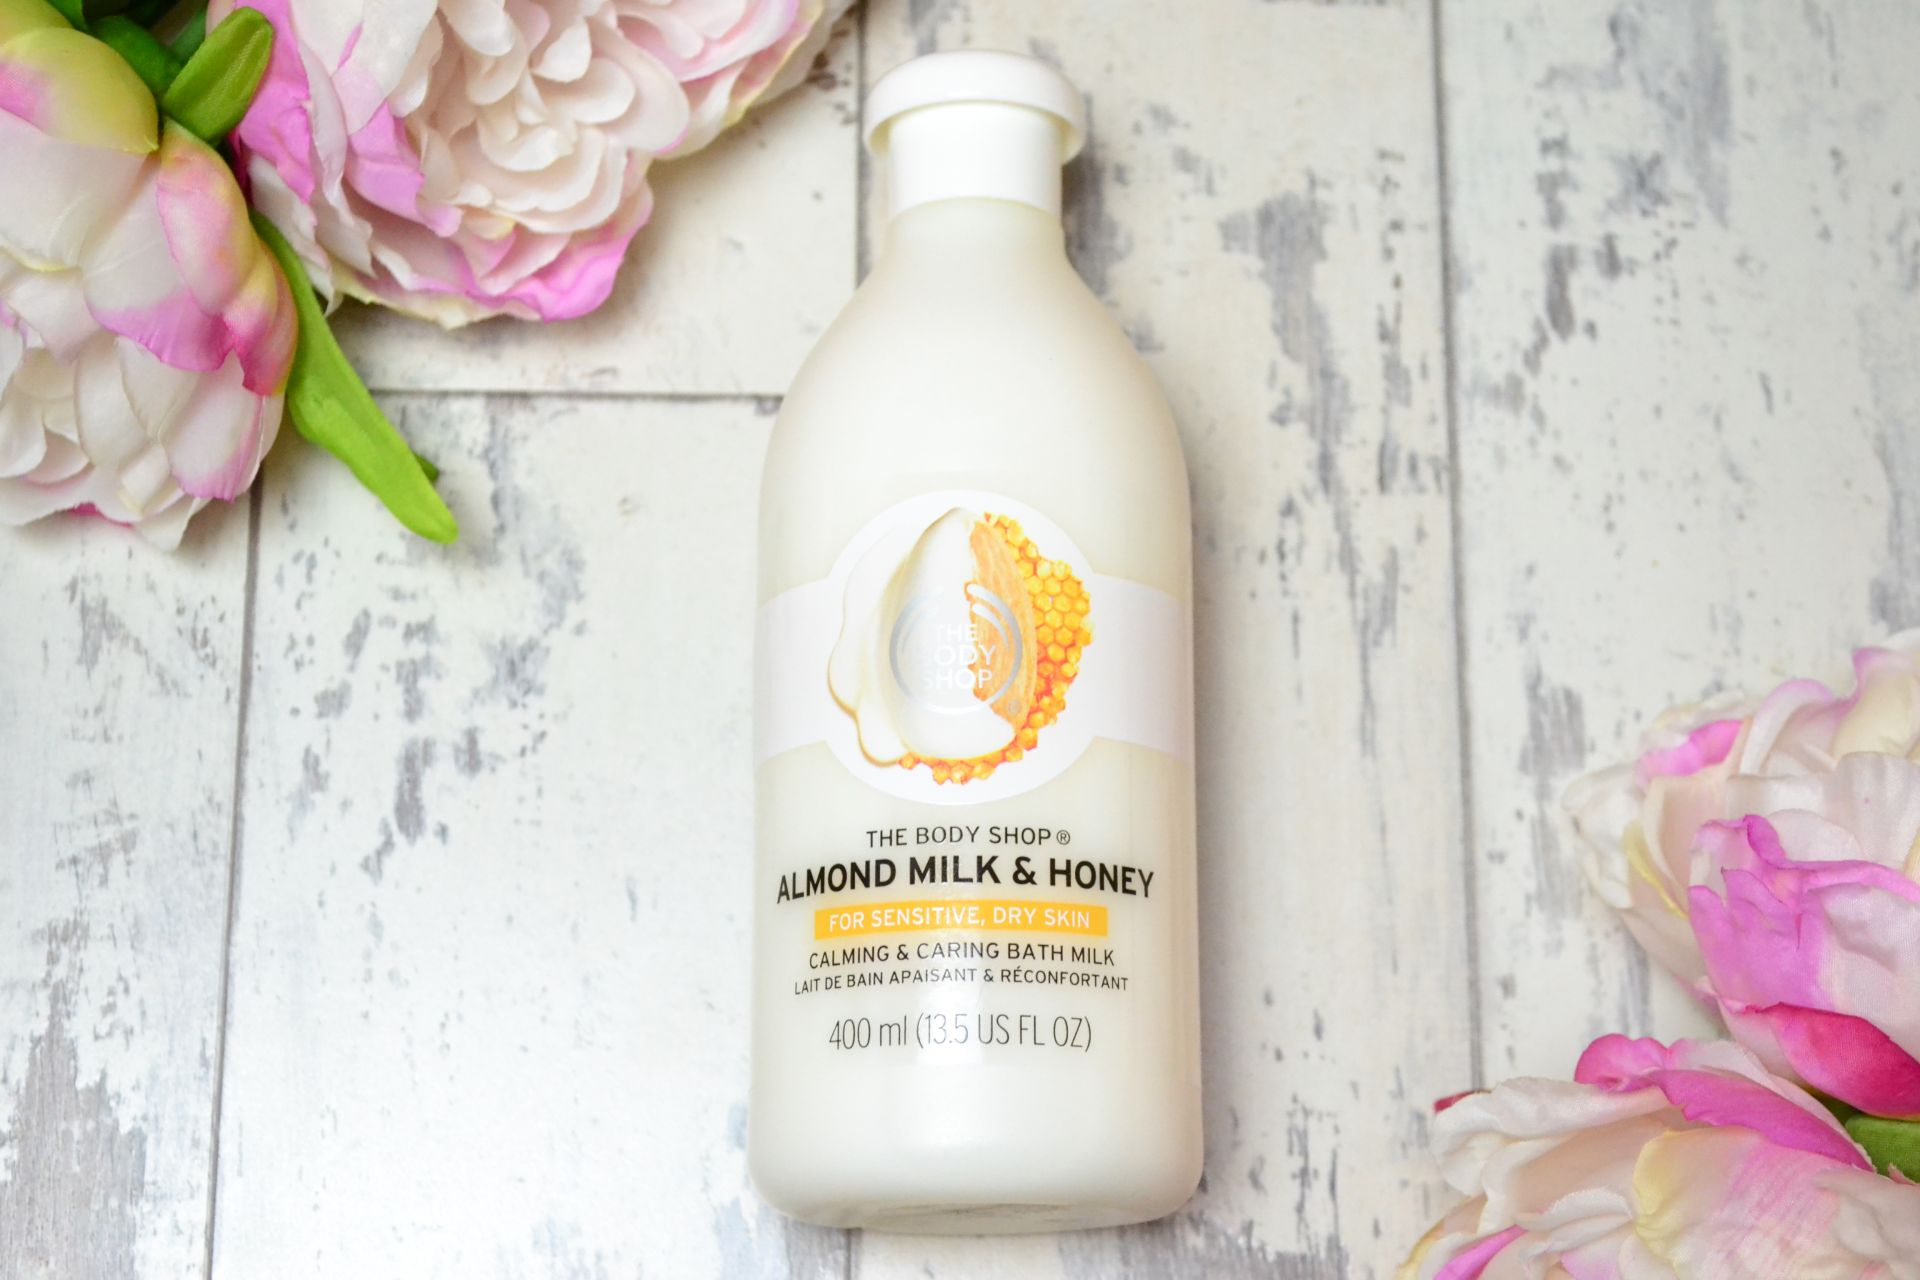 the-body-shop-almond-milk-honey-bath-creme